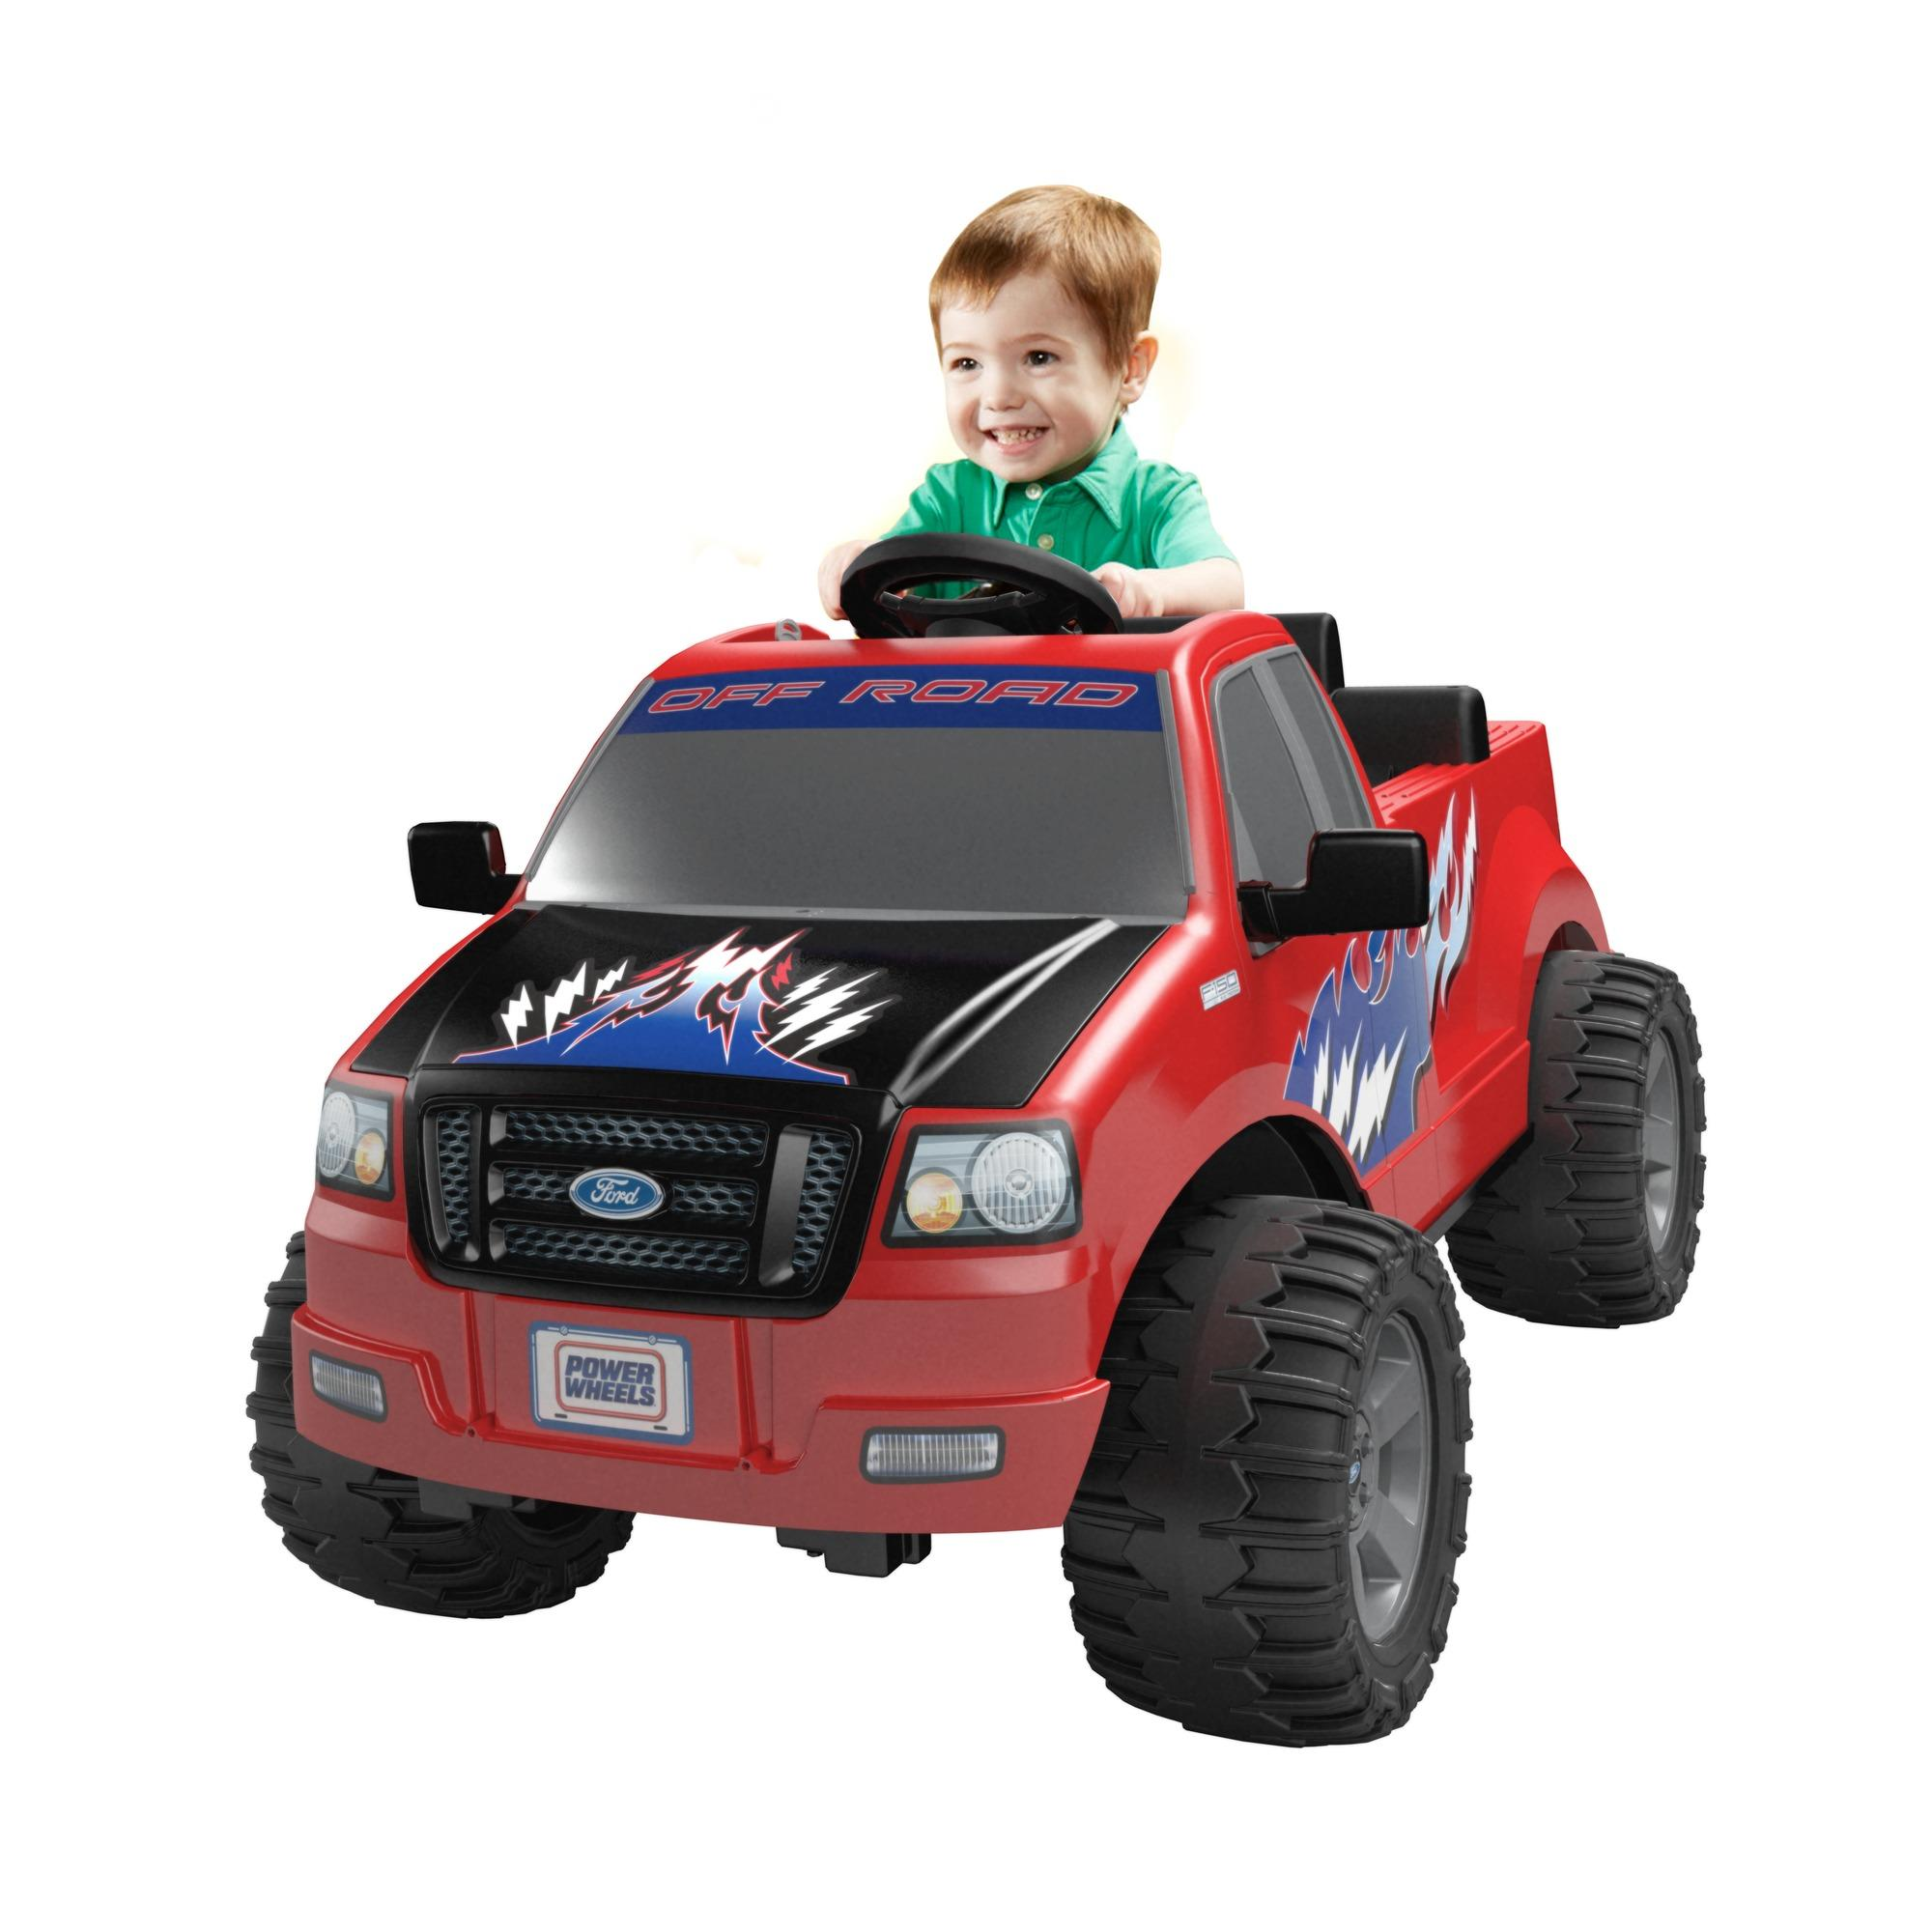 Power Wheels Lil' Ford F150 6V Battery-Powered Ride-On by FISHER PRICE